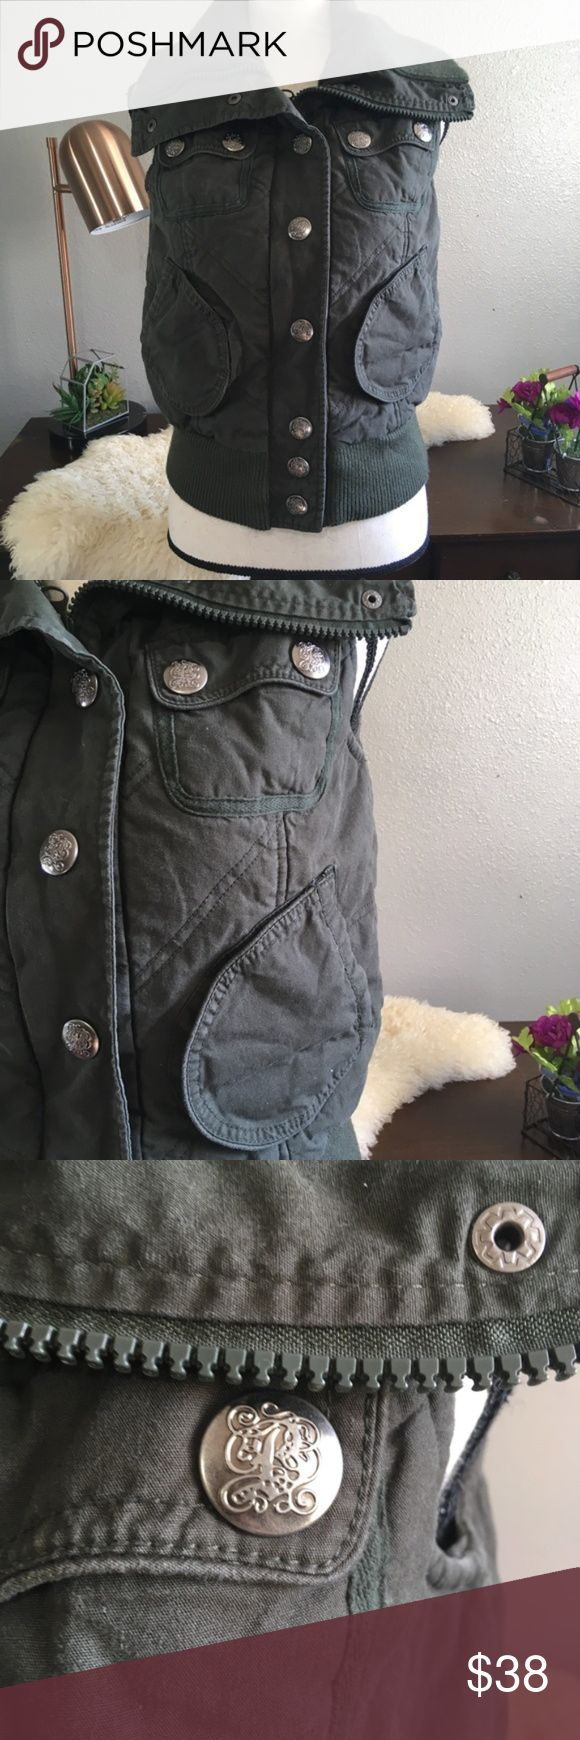 Jack by BB Dakota Dark Green Utility Vest Puffer Gorgeous utility vest from Jack by BB Dakota size small true to size. Good condition free of stains tears and holes. Made of 100% cotton with a 100% polyester lining. Big detailed buttons and large pockets with a tall neck. Very cute and practical since it's super warm. Measurements upon request. Jack by BB Dakota Jackets & Coats Vests